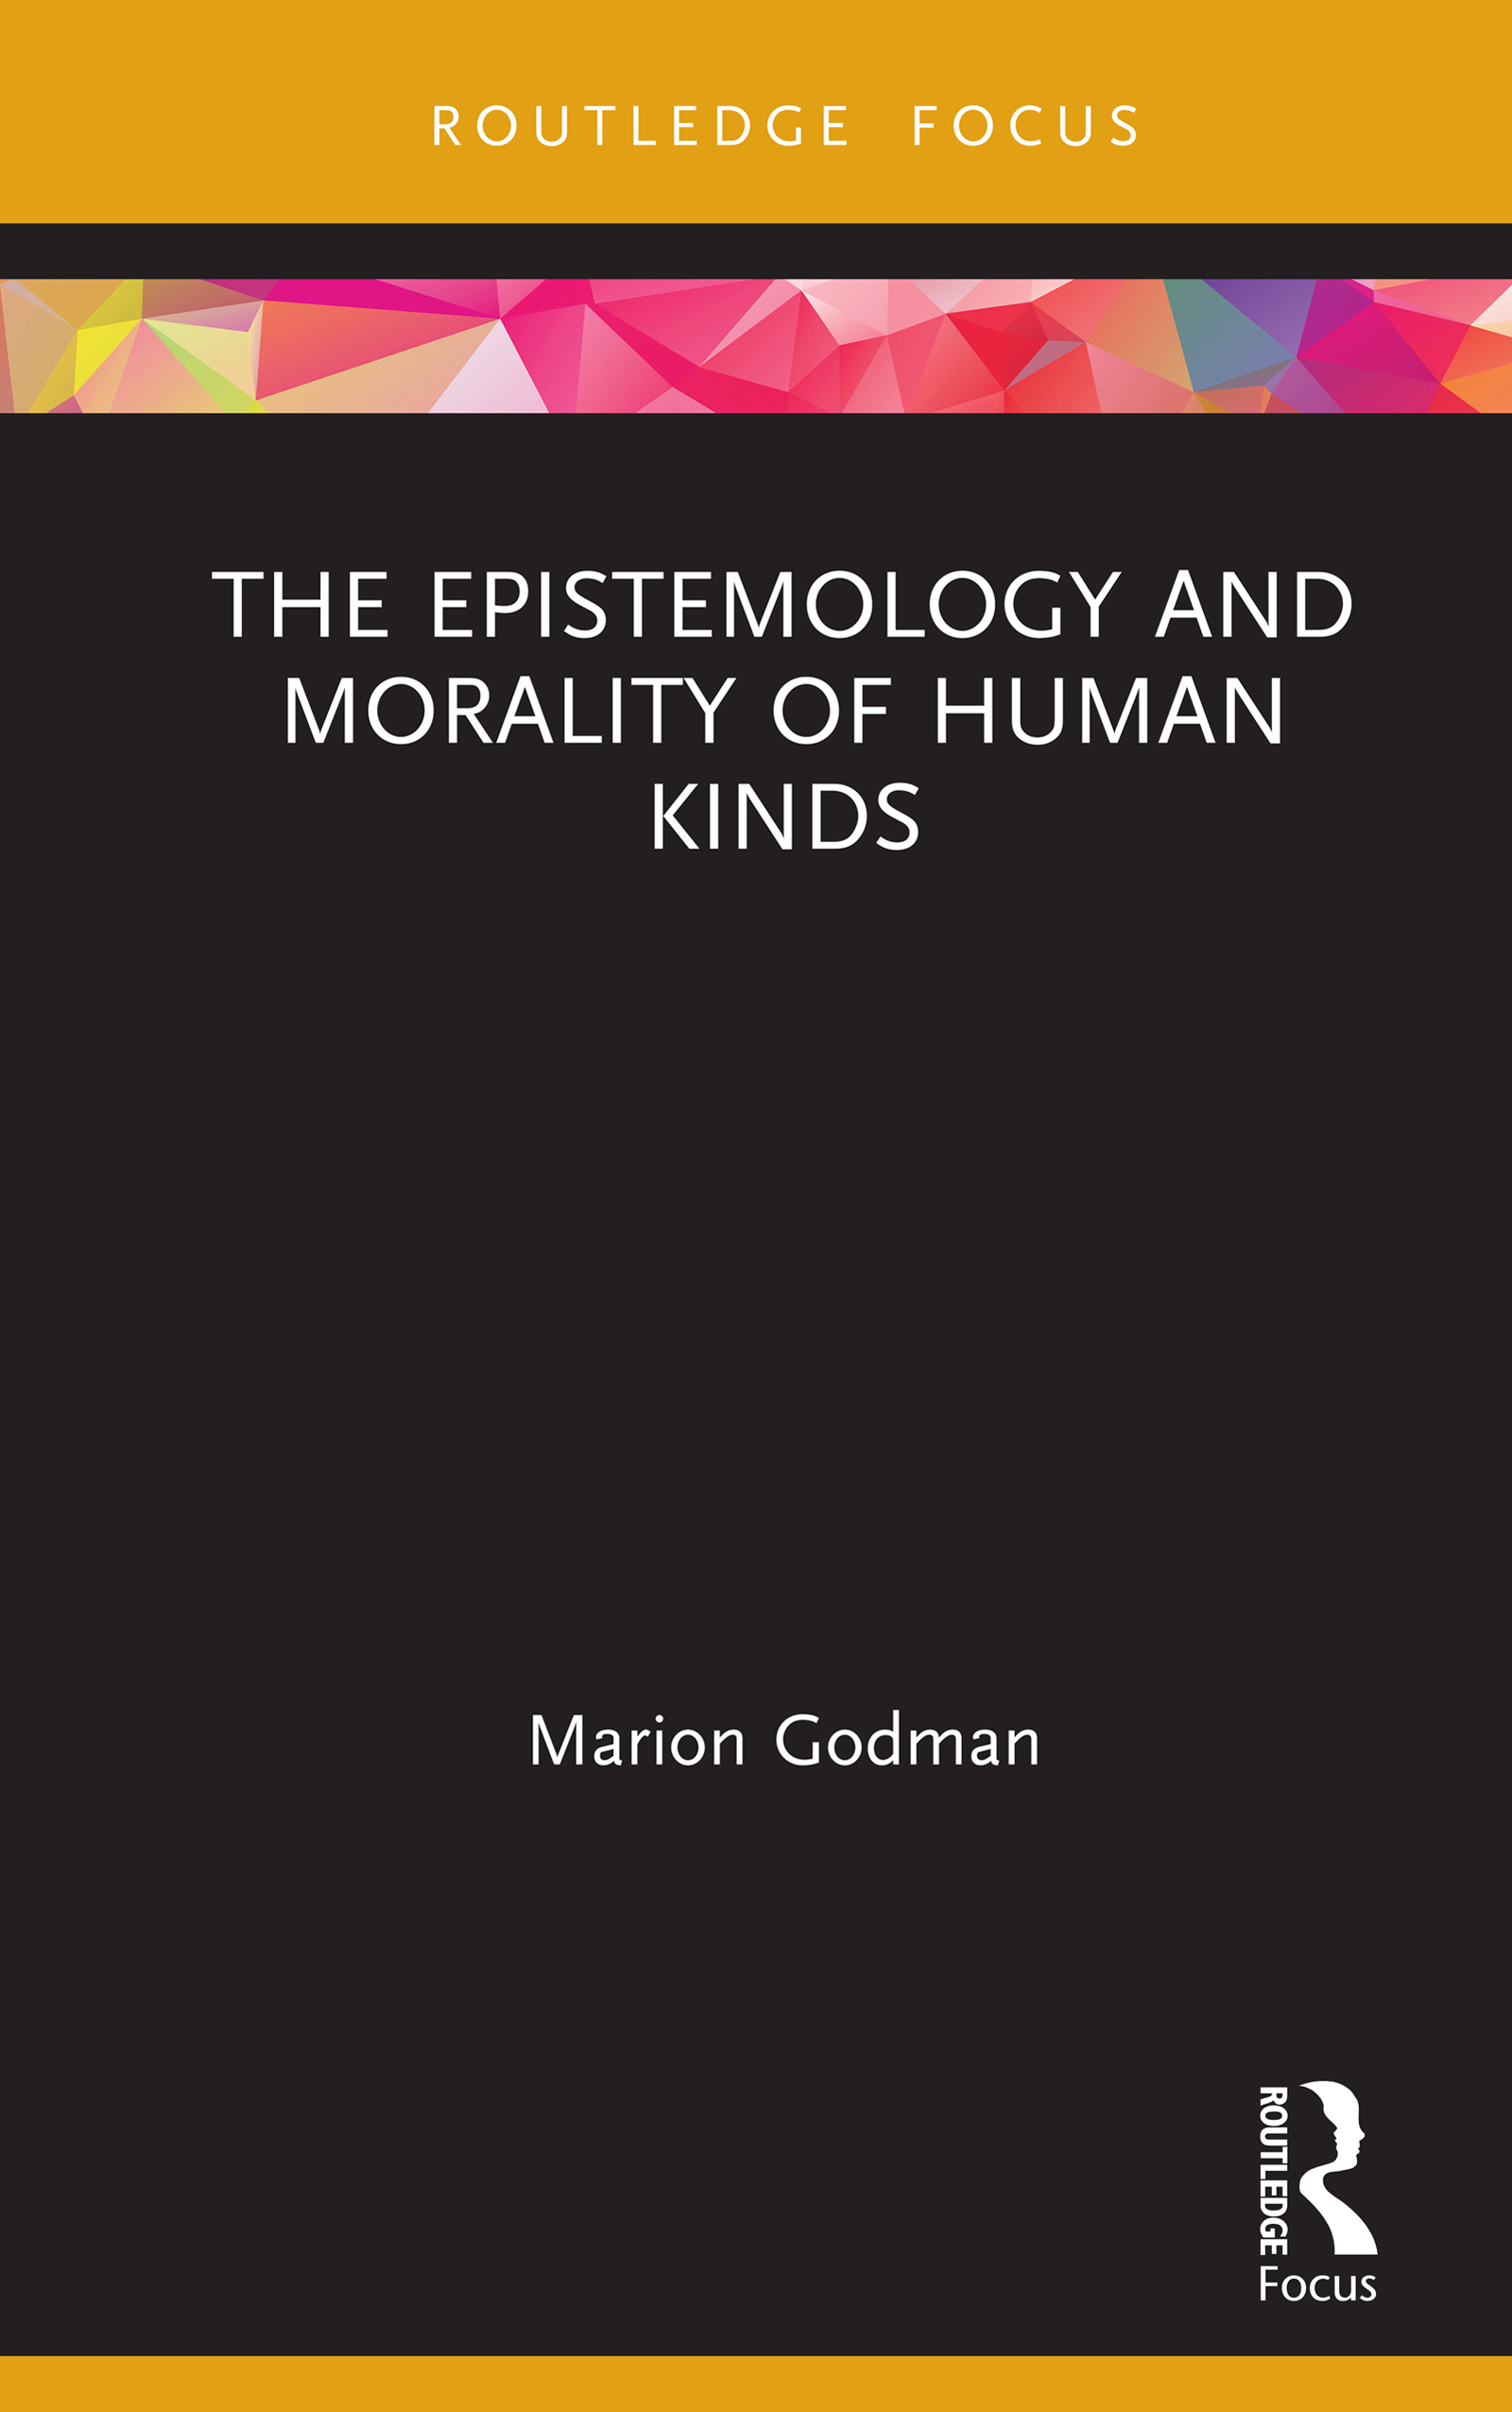 The Epistemology and Morality of Human Kinds